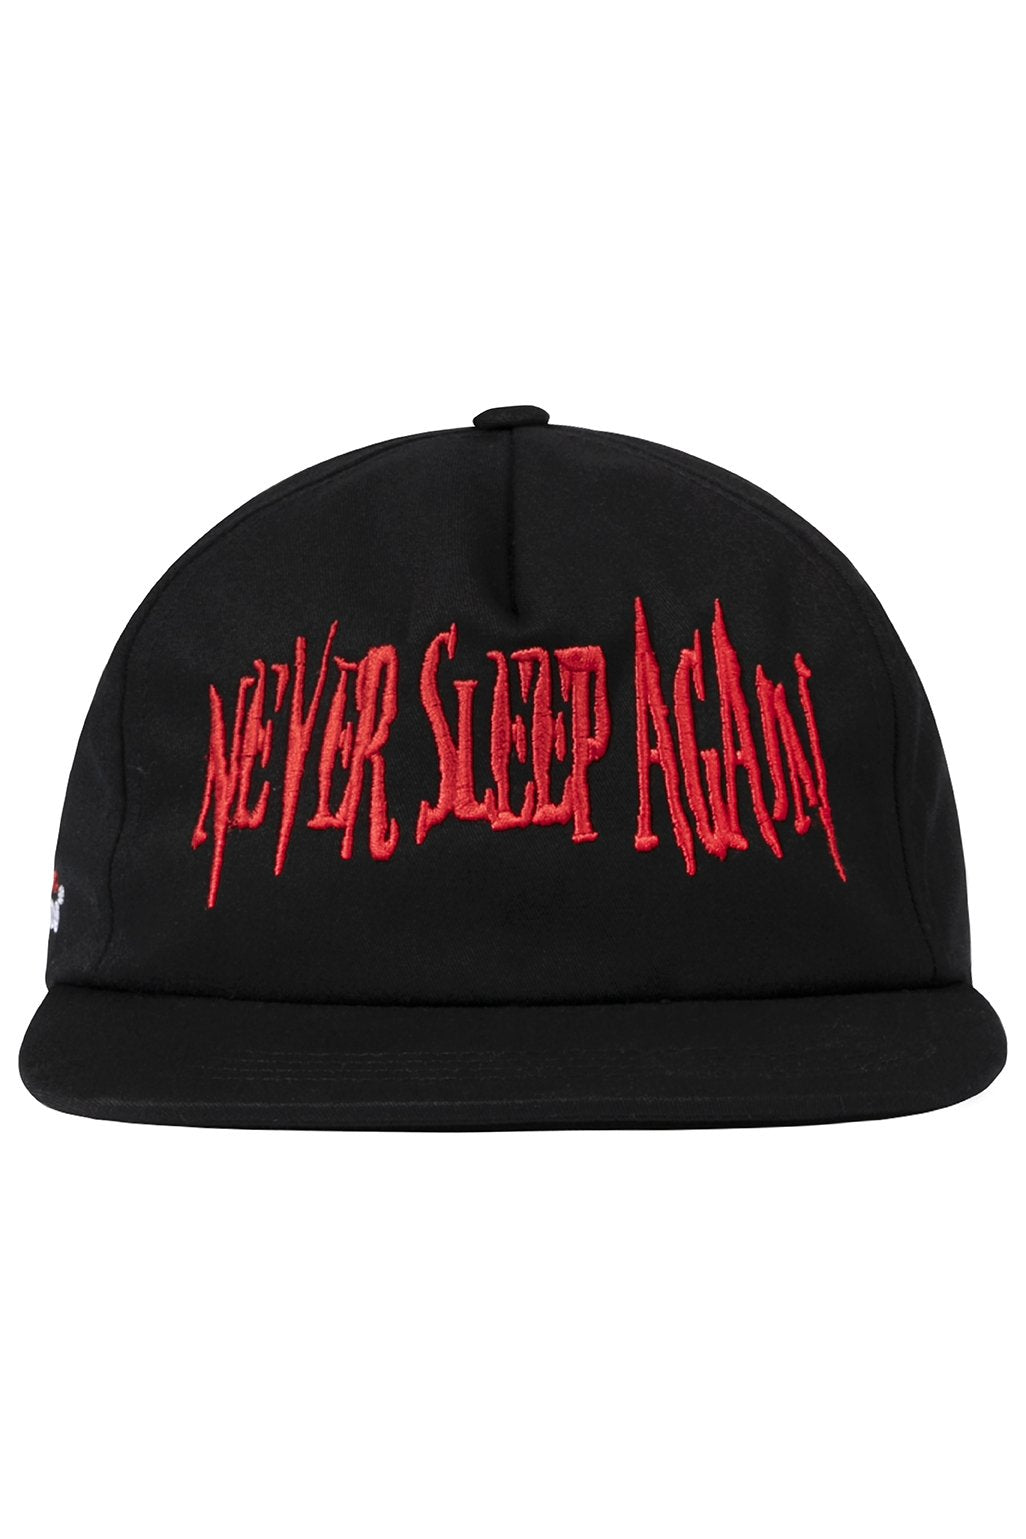 The Hundreds Freddy Kruger Snapback in Black xld